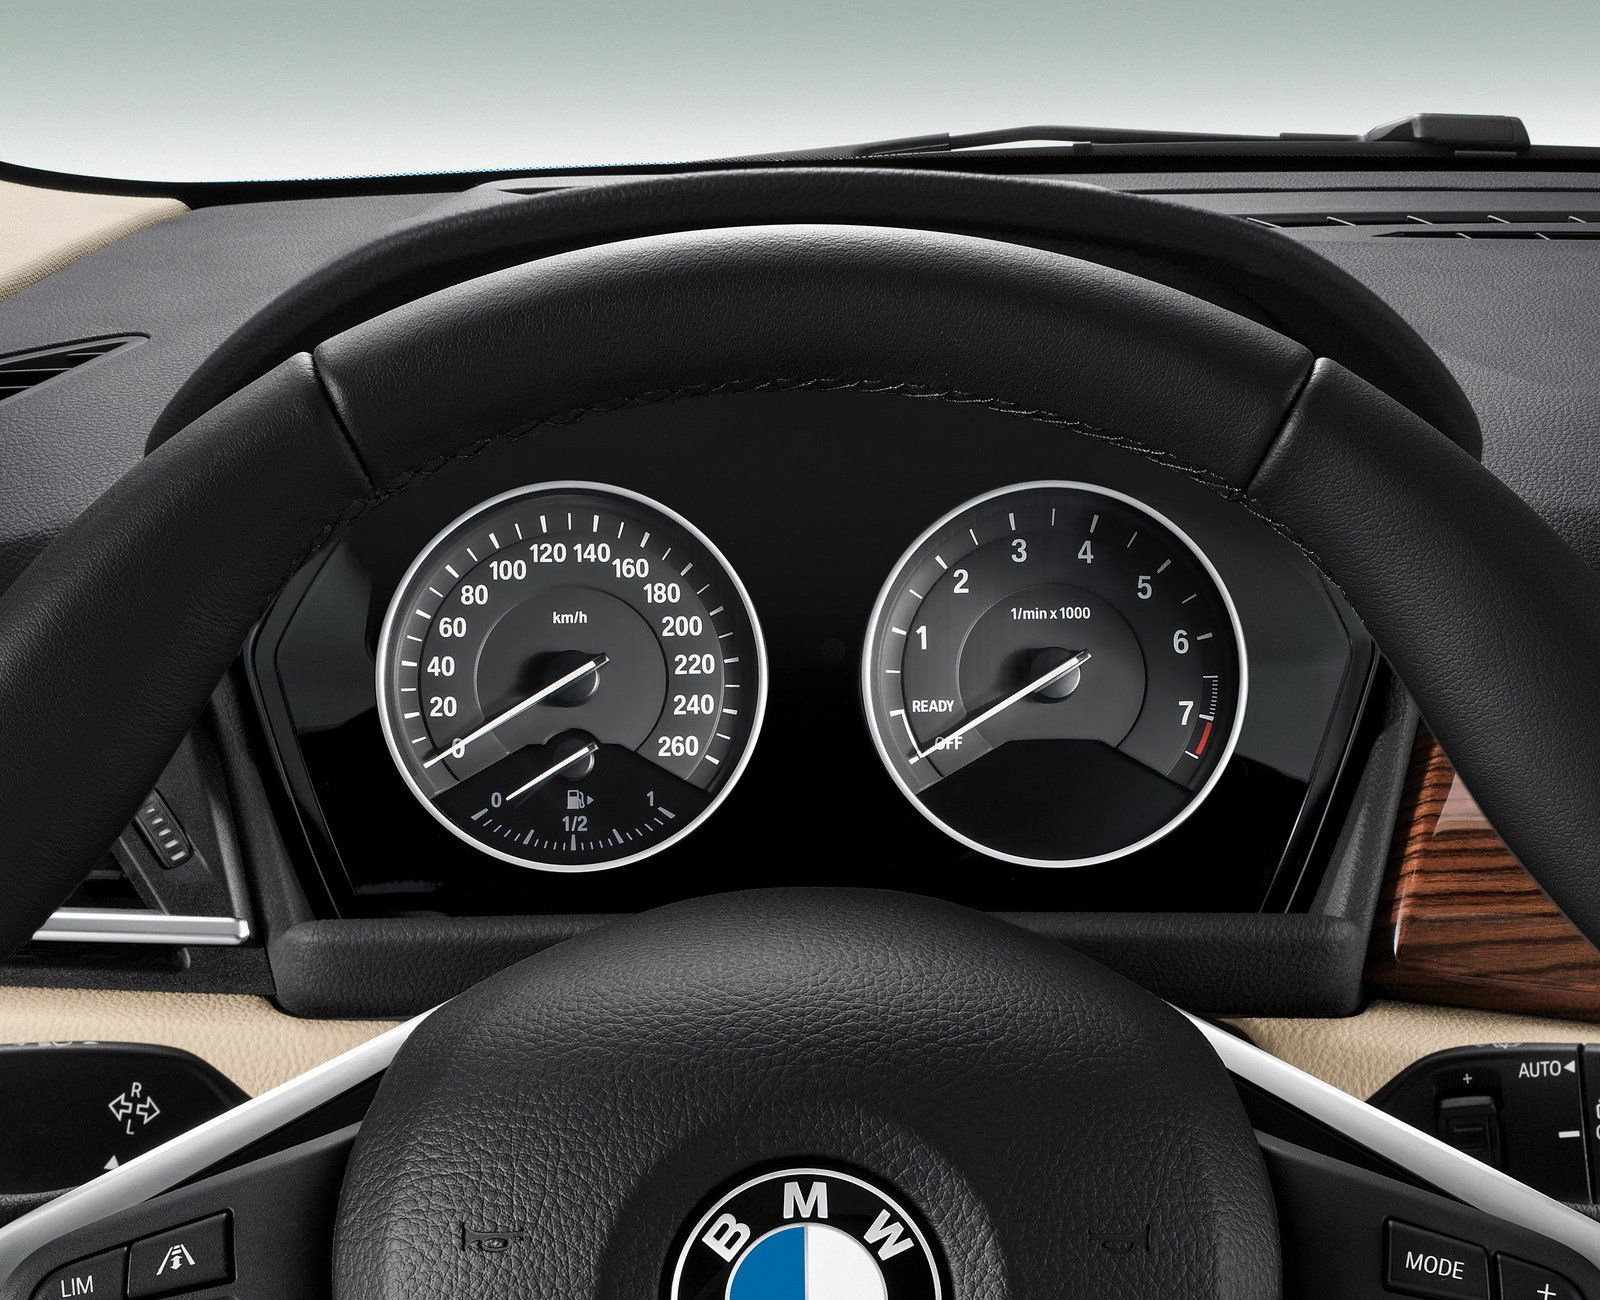 2018 BMW 2 series Redesign  2018 CARS RELEASE 2019  BMW  Pinterest